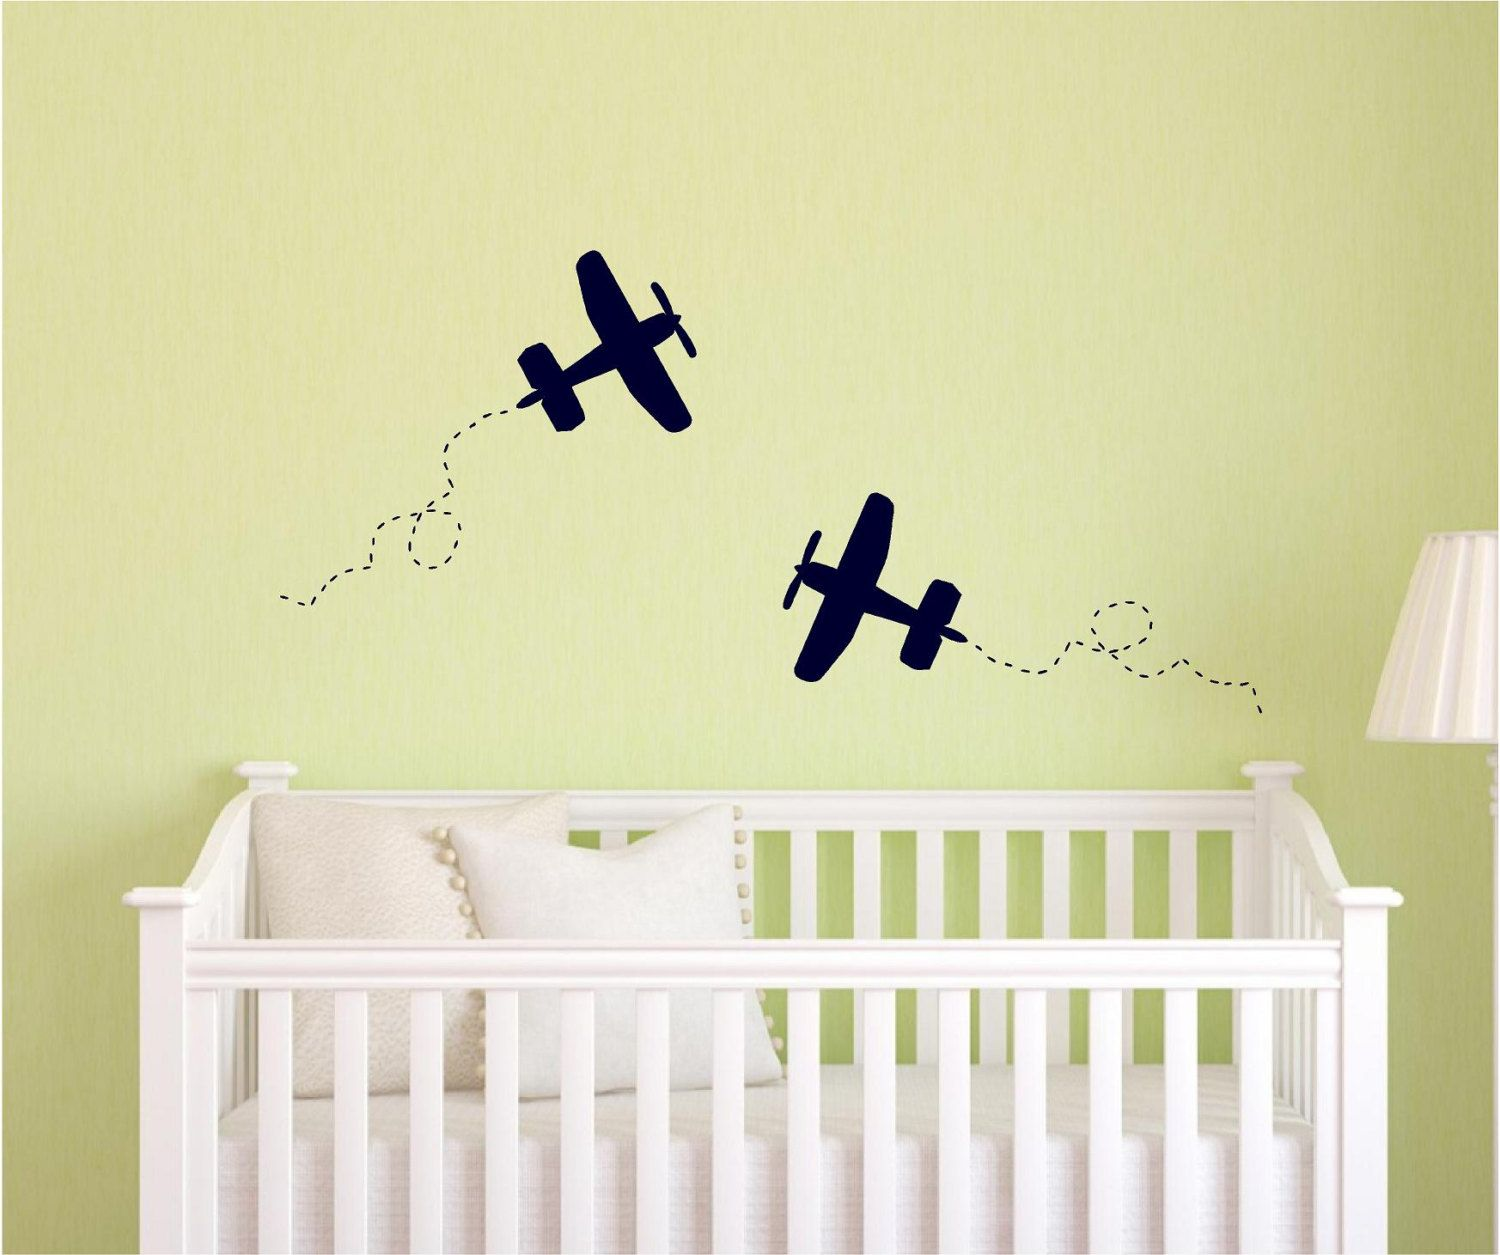 Set of 6 vinyl wall decals - airplane with trail - perfect for ...